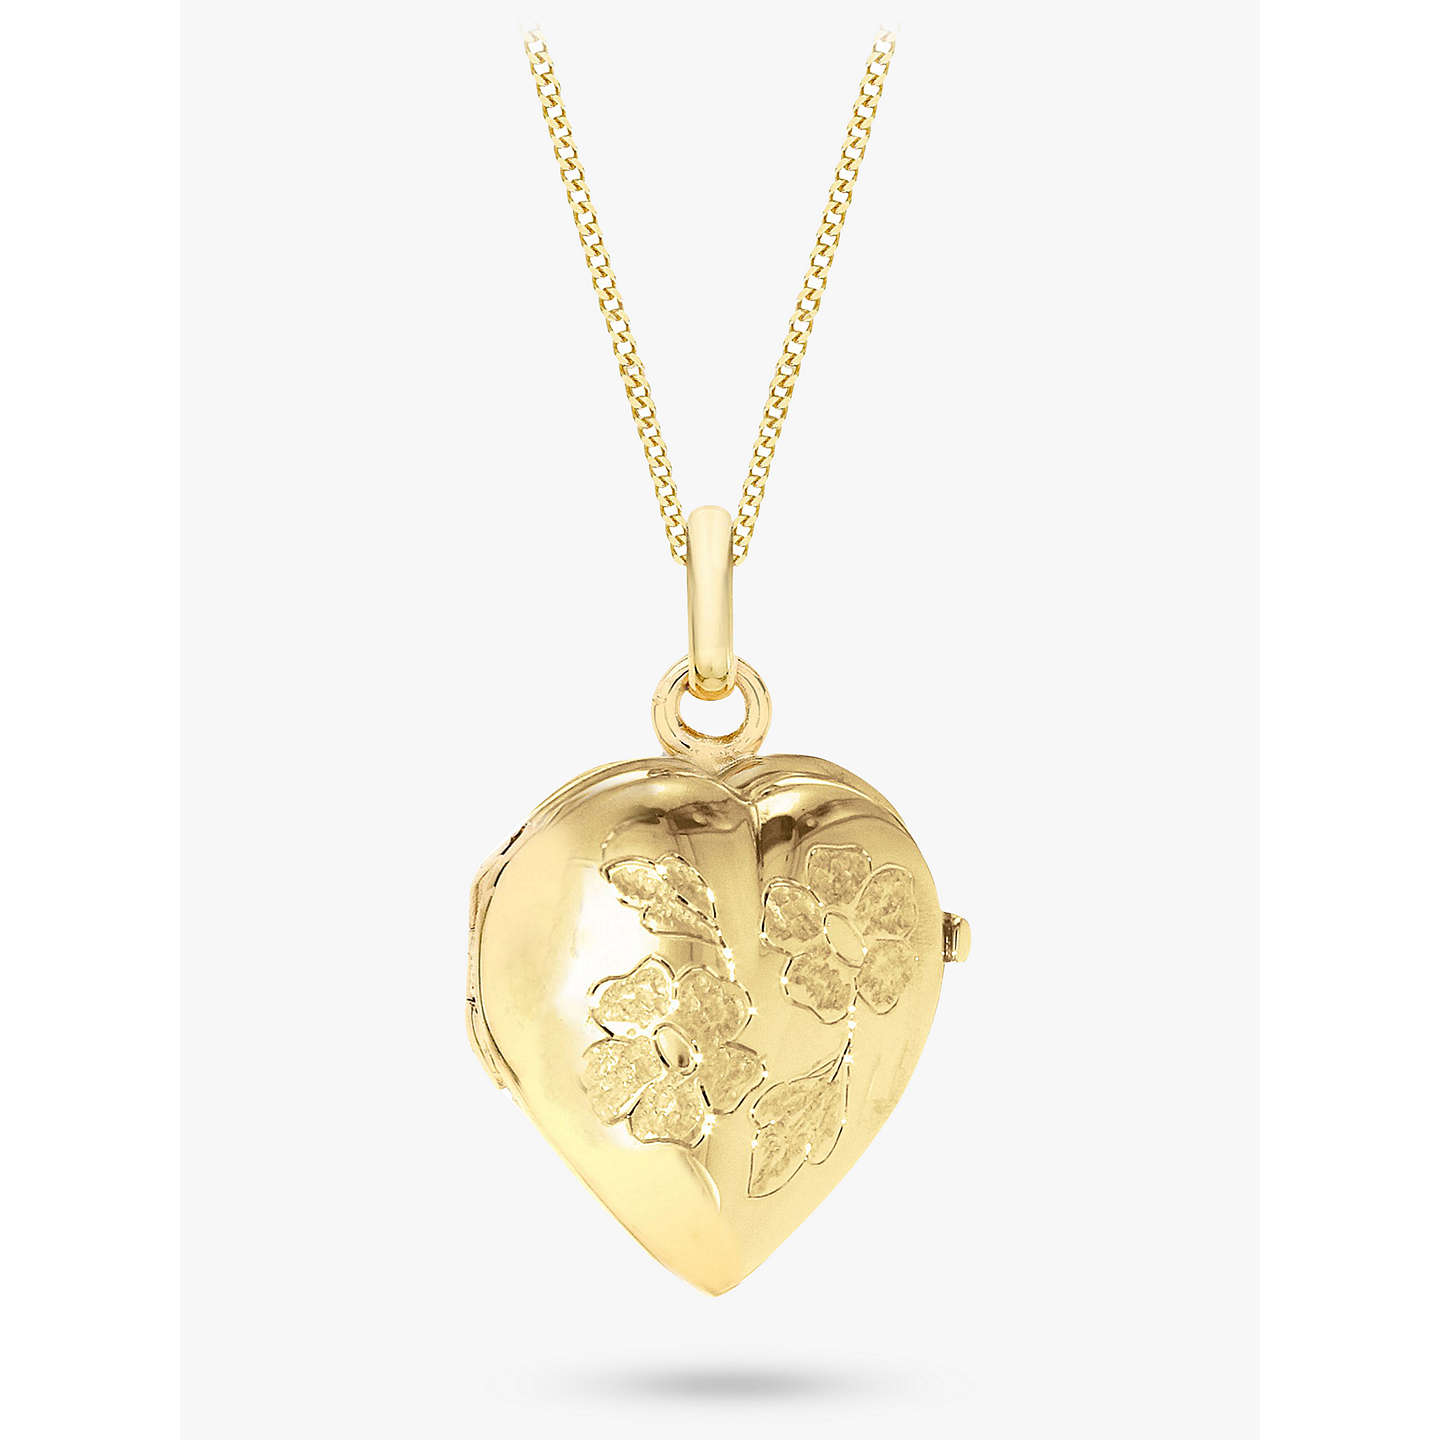 b pendant nathaniel chain necklaces gold index